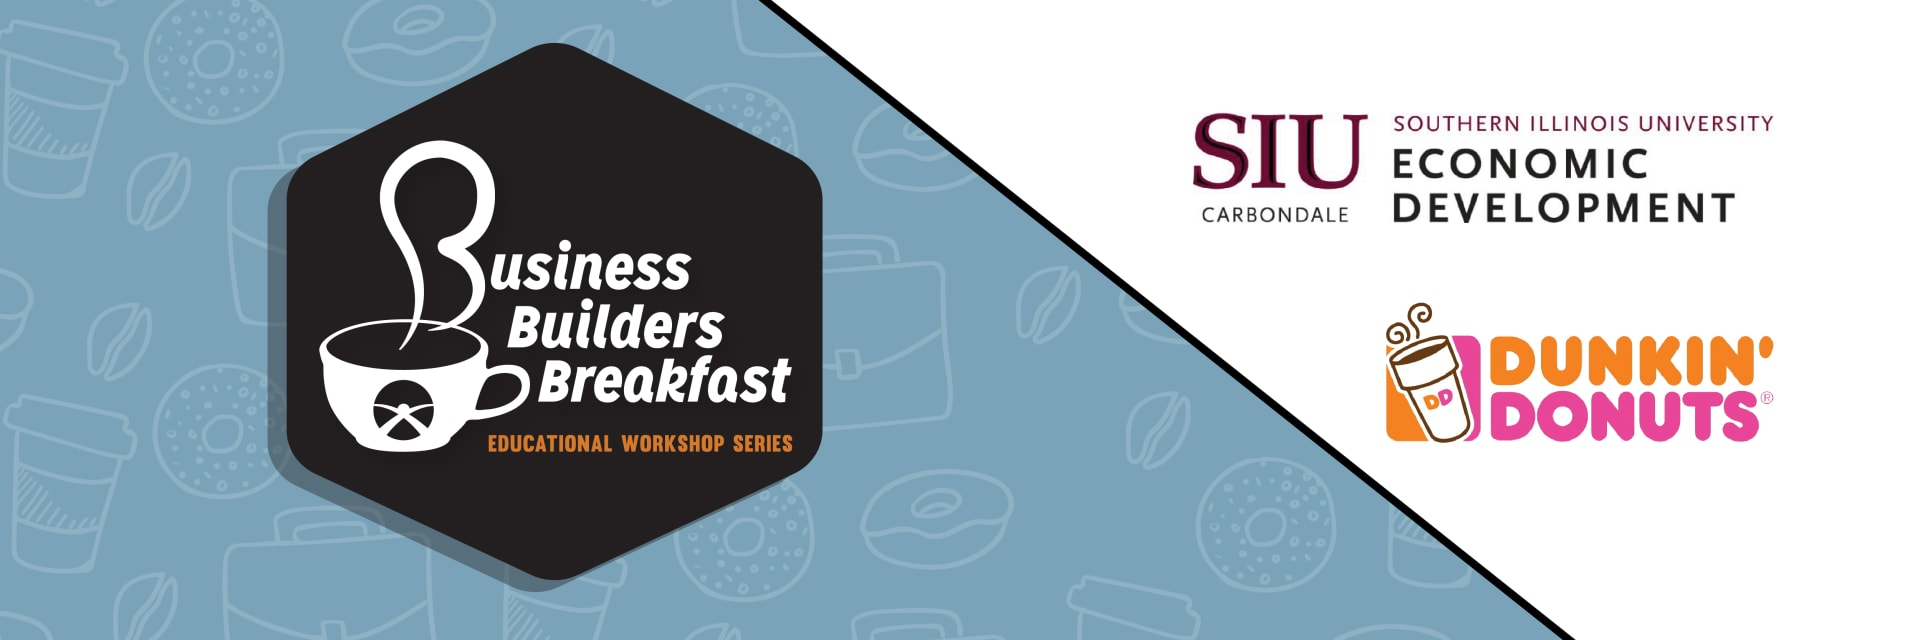 Business Builders Breakfast